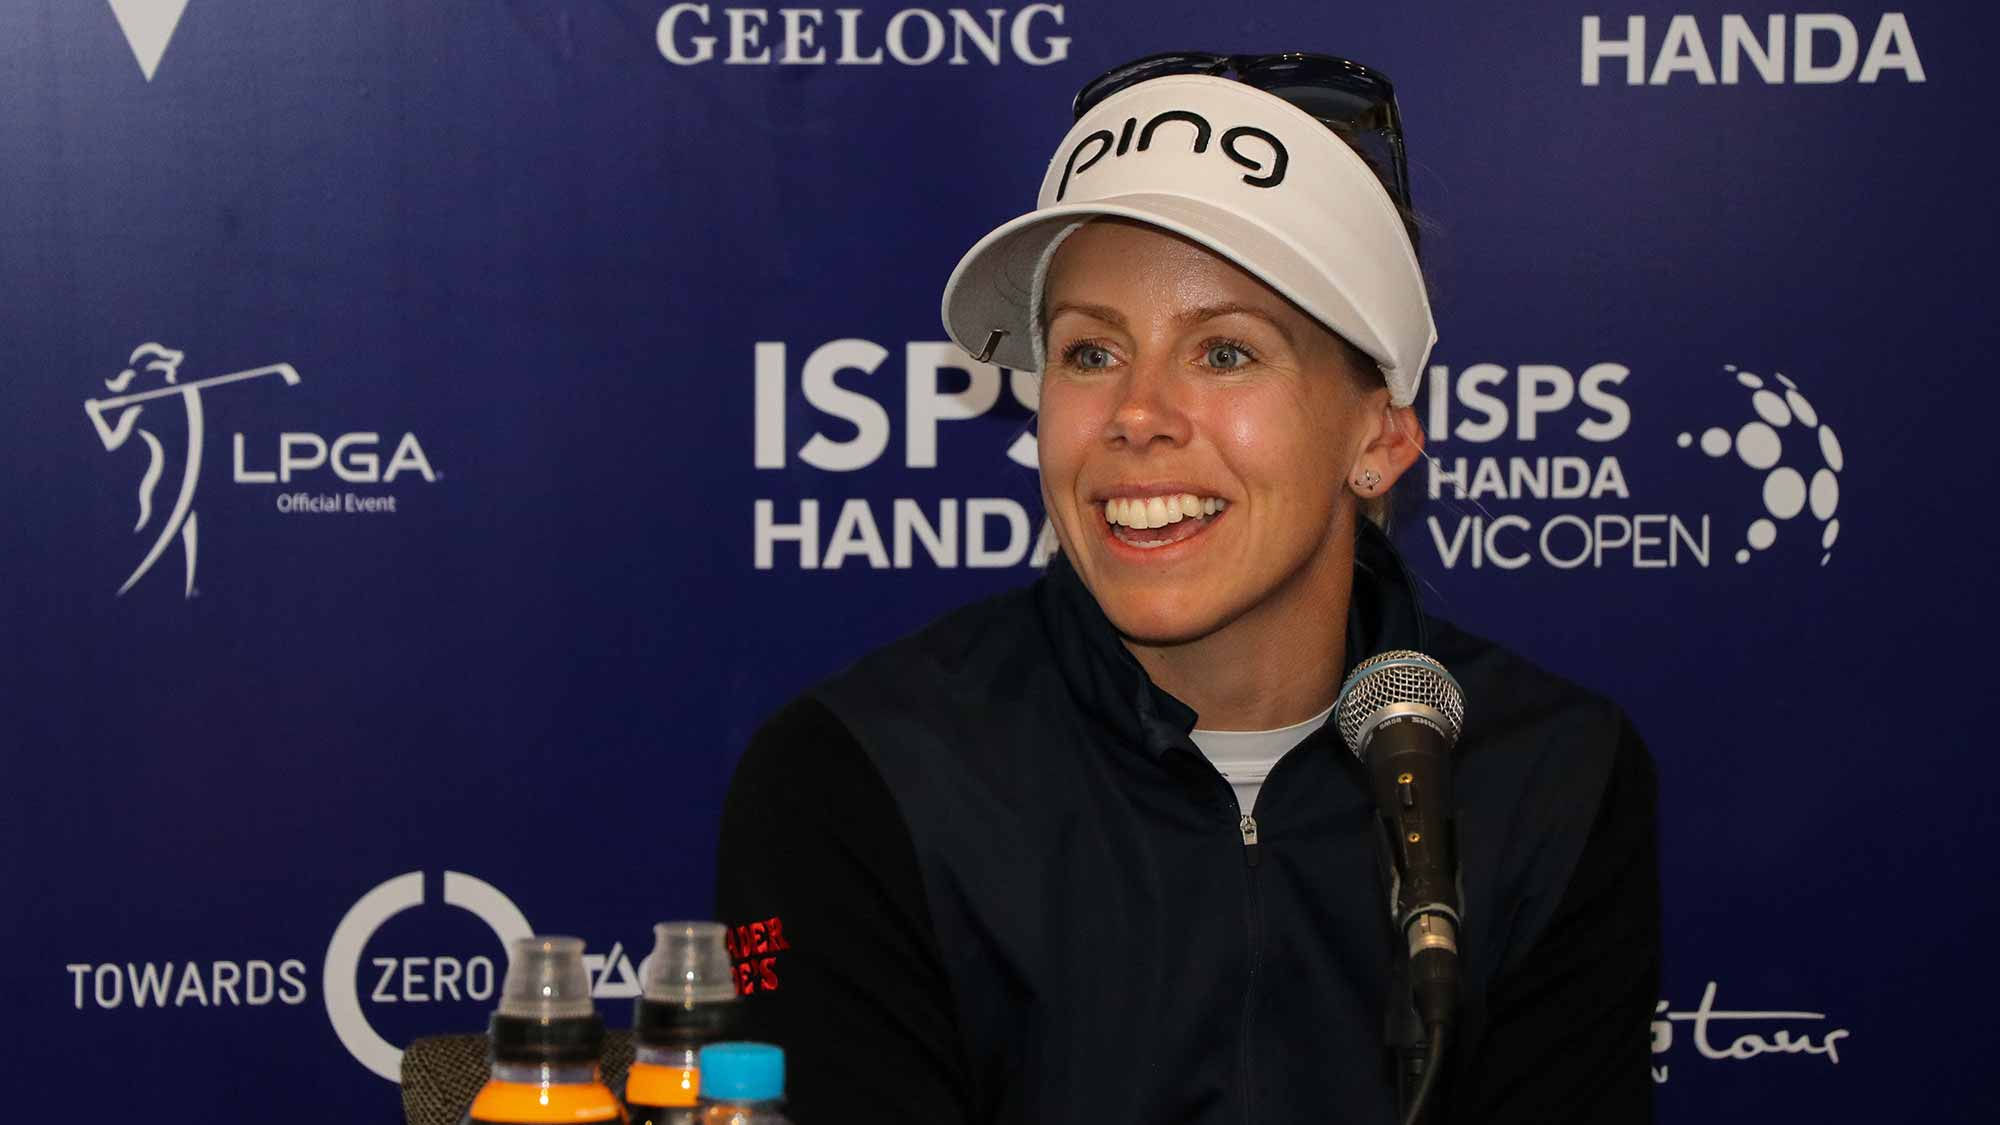 Pernilla Lindberg Meets With The Media Ahead of the 2019 ISPS Handa Vic Open in Australia